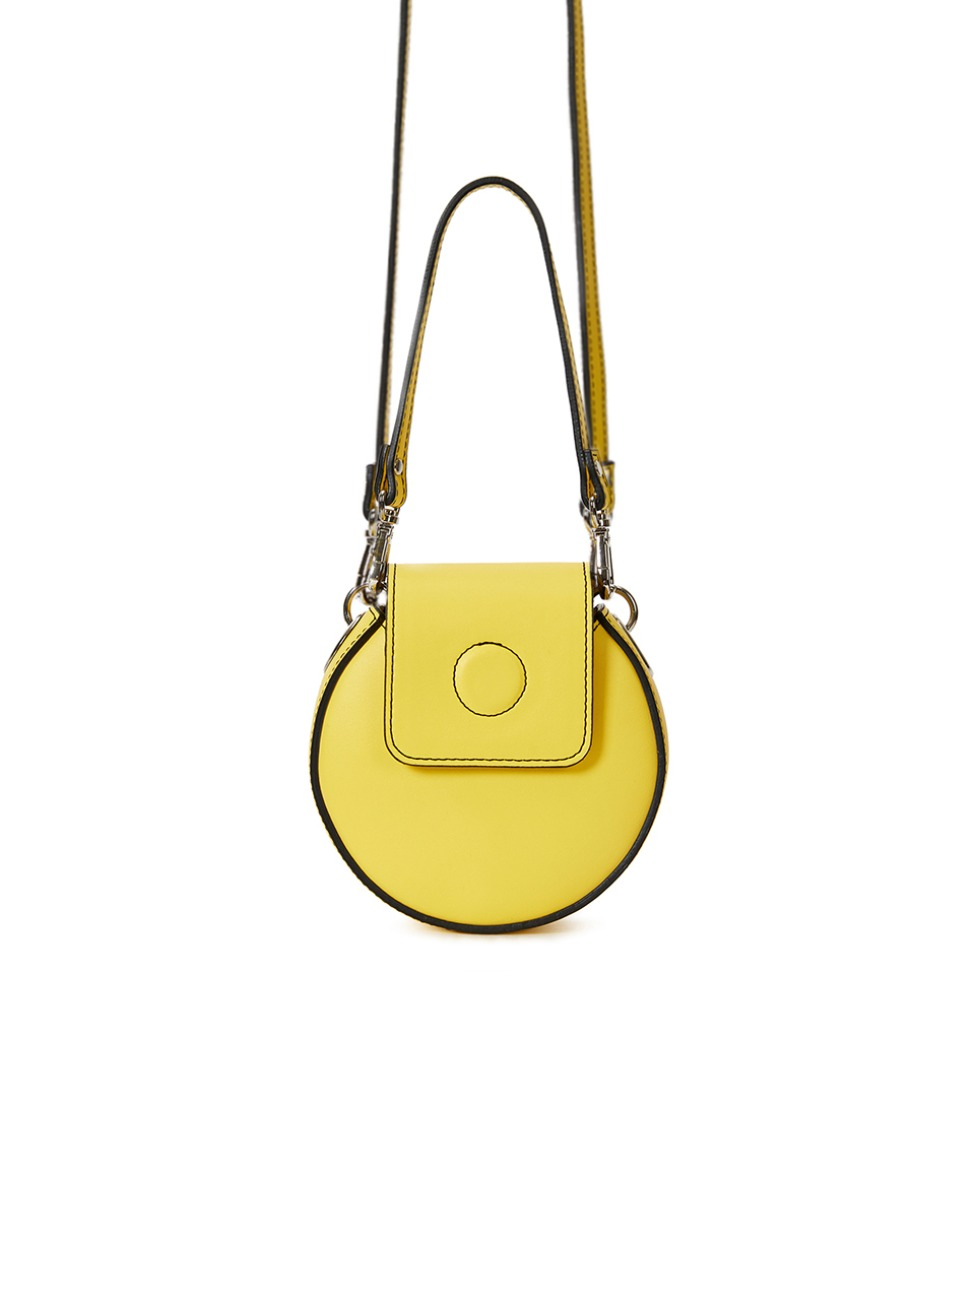 [재입고 미정]NANO CIRCLE BAG _ YELLOW